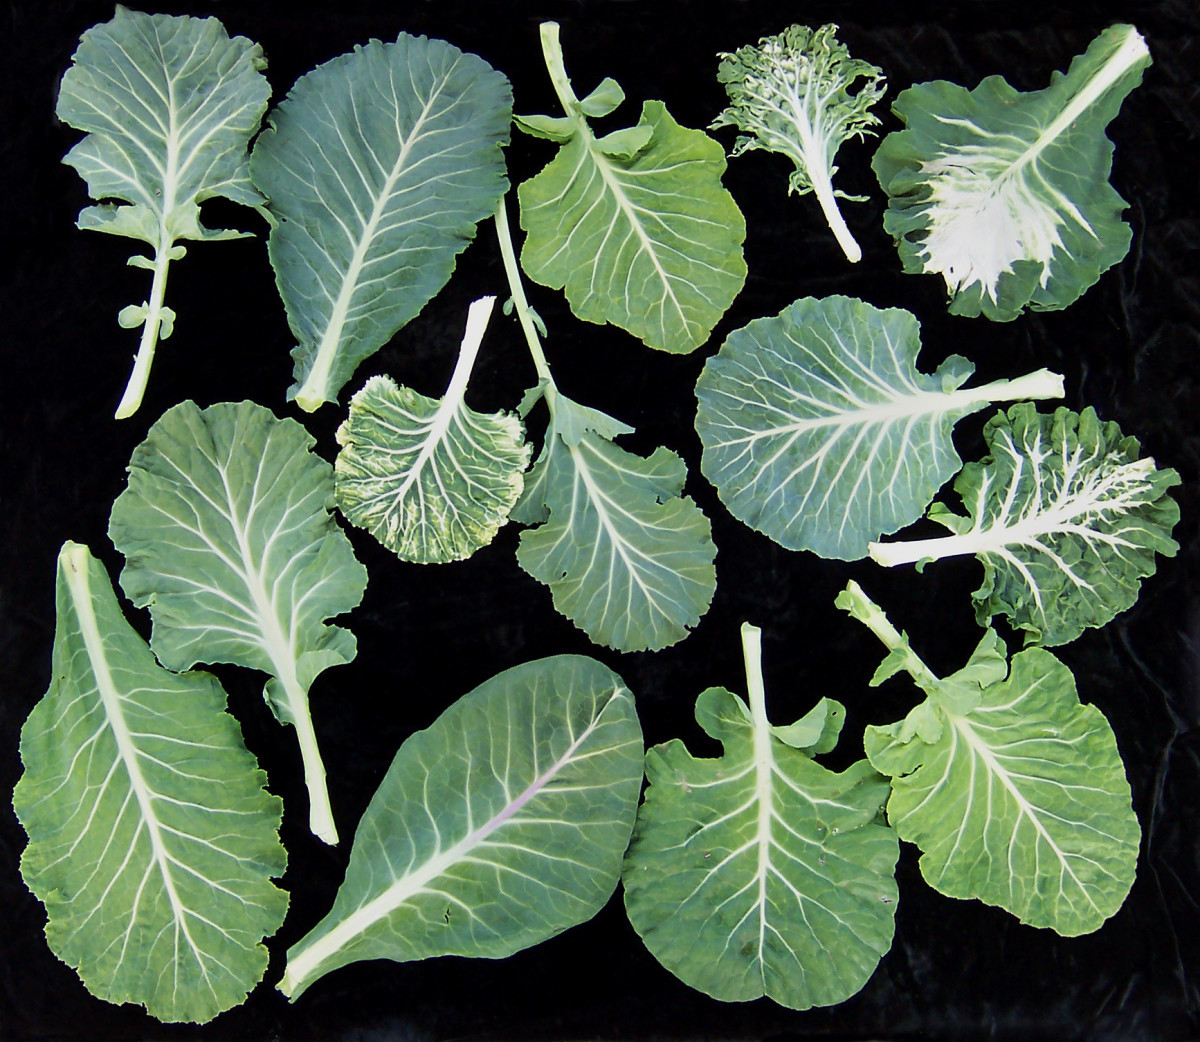 Leaves from a variety of collard greens